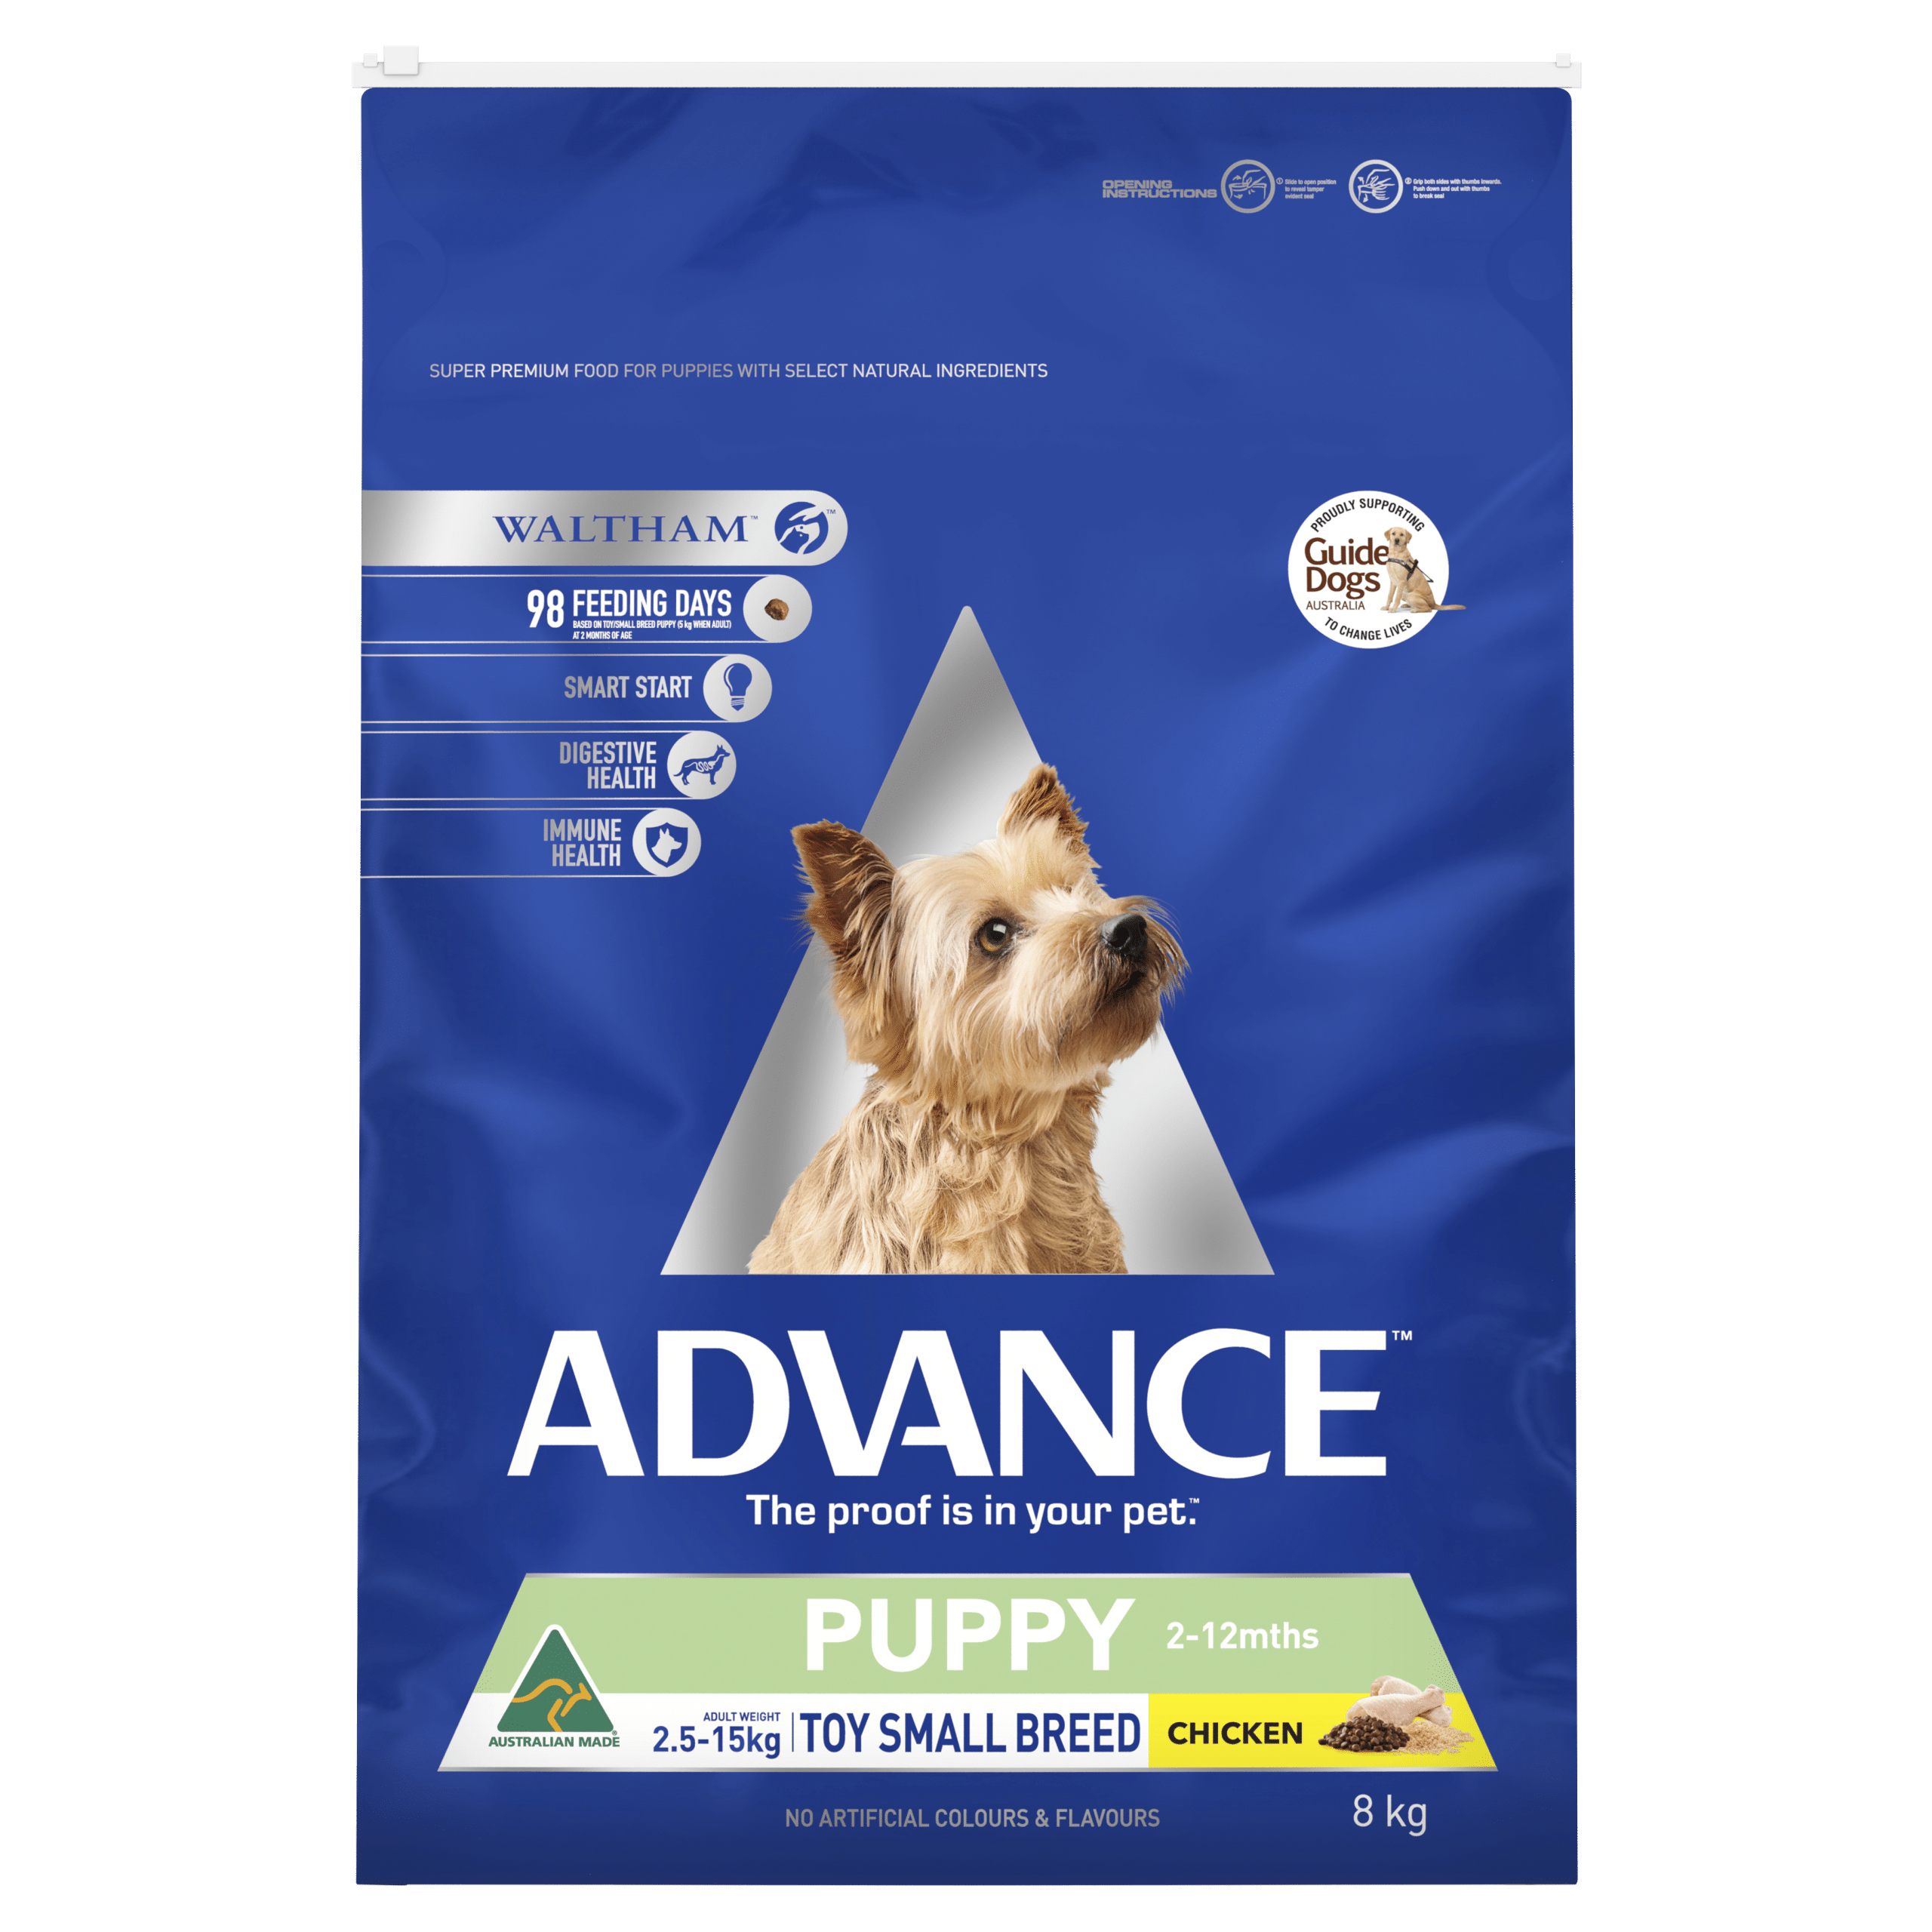 Advance Puppy Plus Toy Small Breed Chicken 8kg